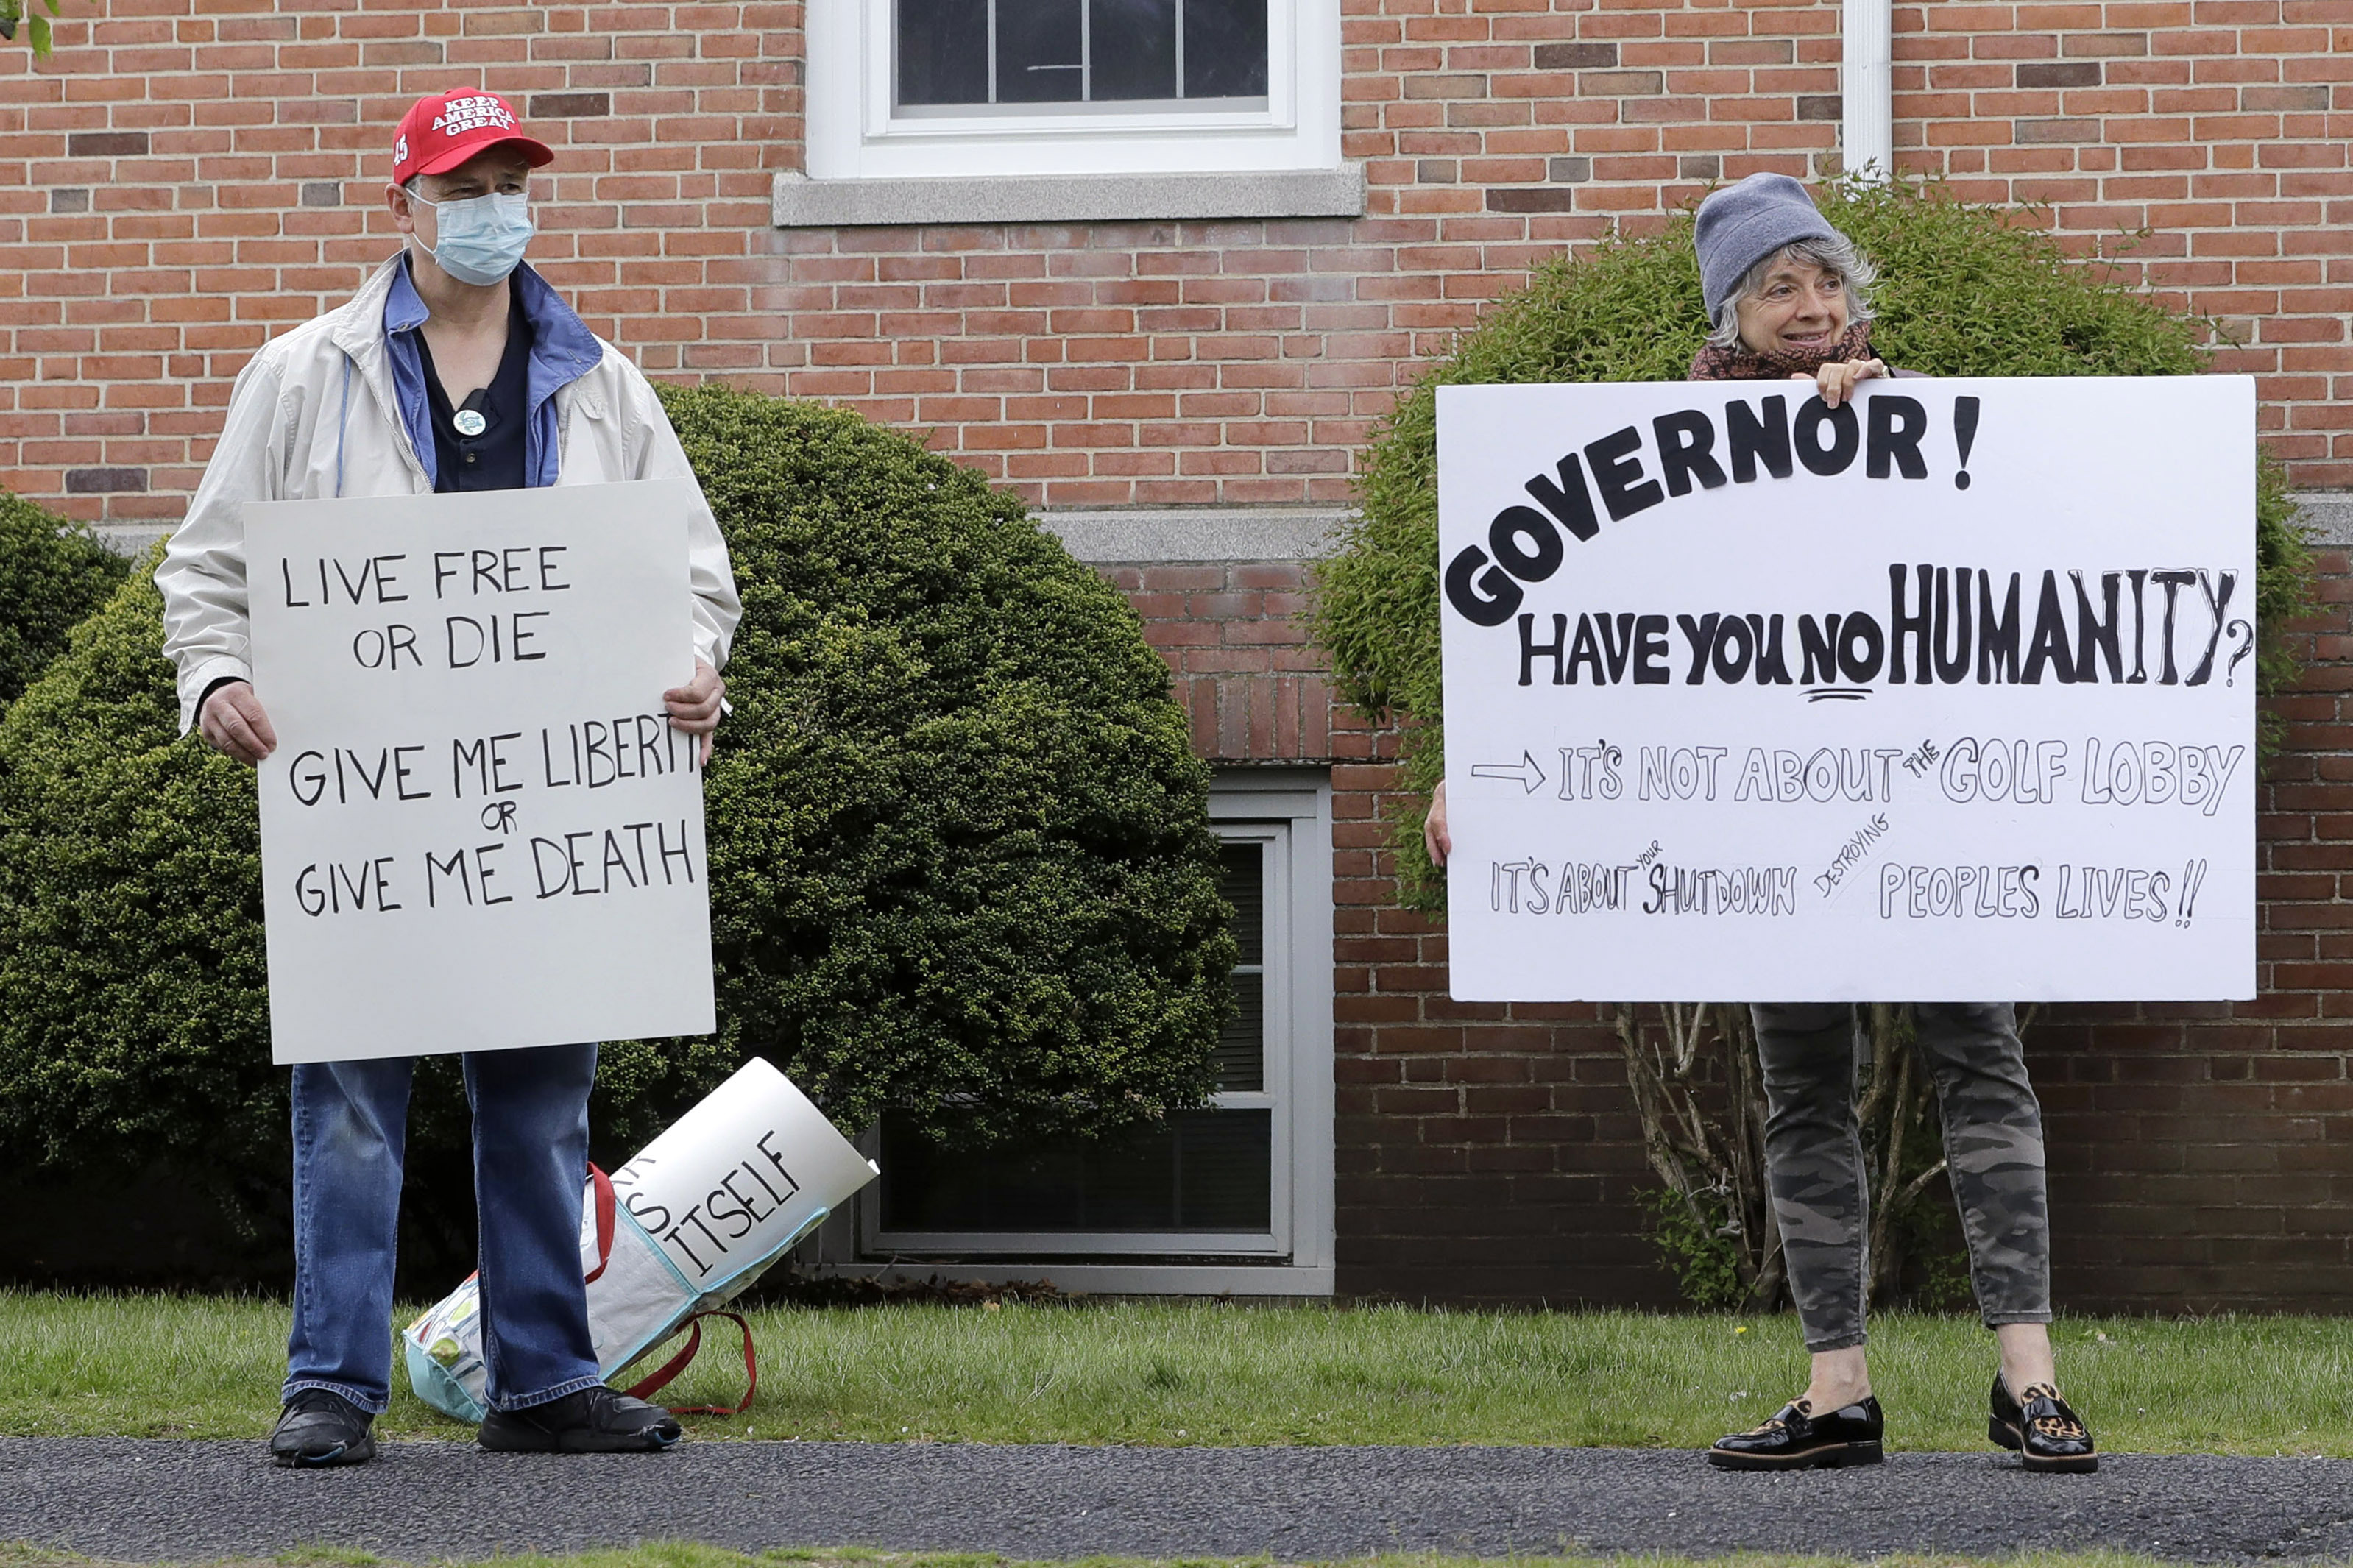 Protesters display placards while demonstrating against the shutdown caused by the COVID-19 virus outbreak, near the home of Massachusetts Gov. Charlie Baker, in Swampscott, Mass., on May 11, 2020.